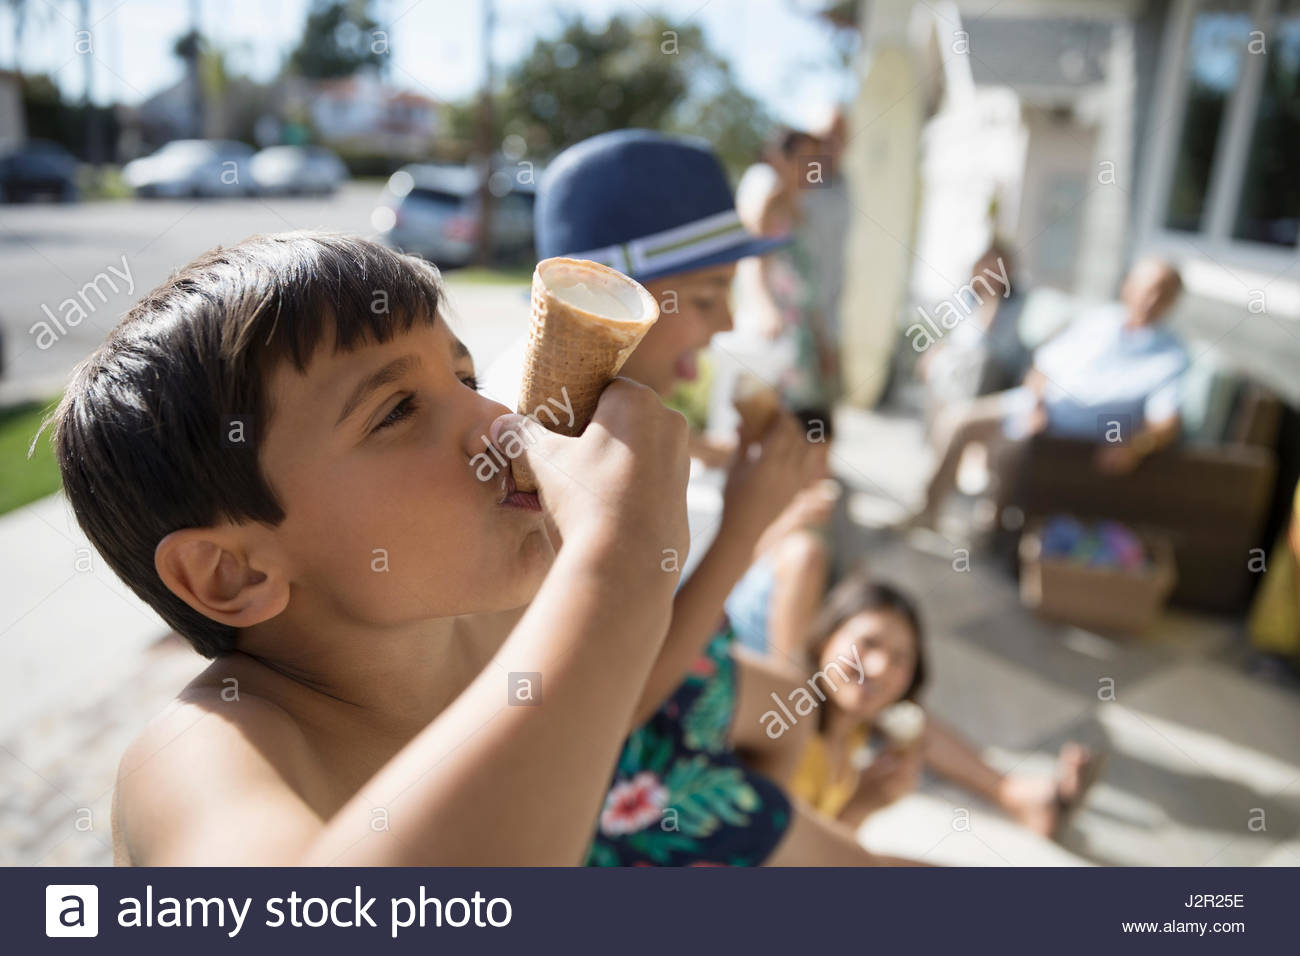 Boy eating melting ice cream cone on summer beach house porch - Stock Image